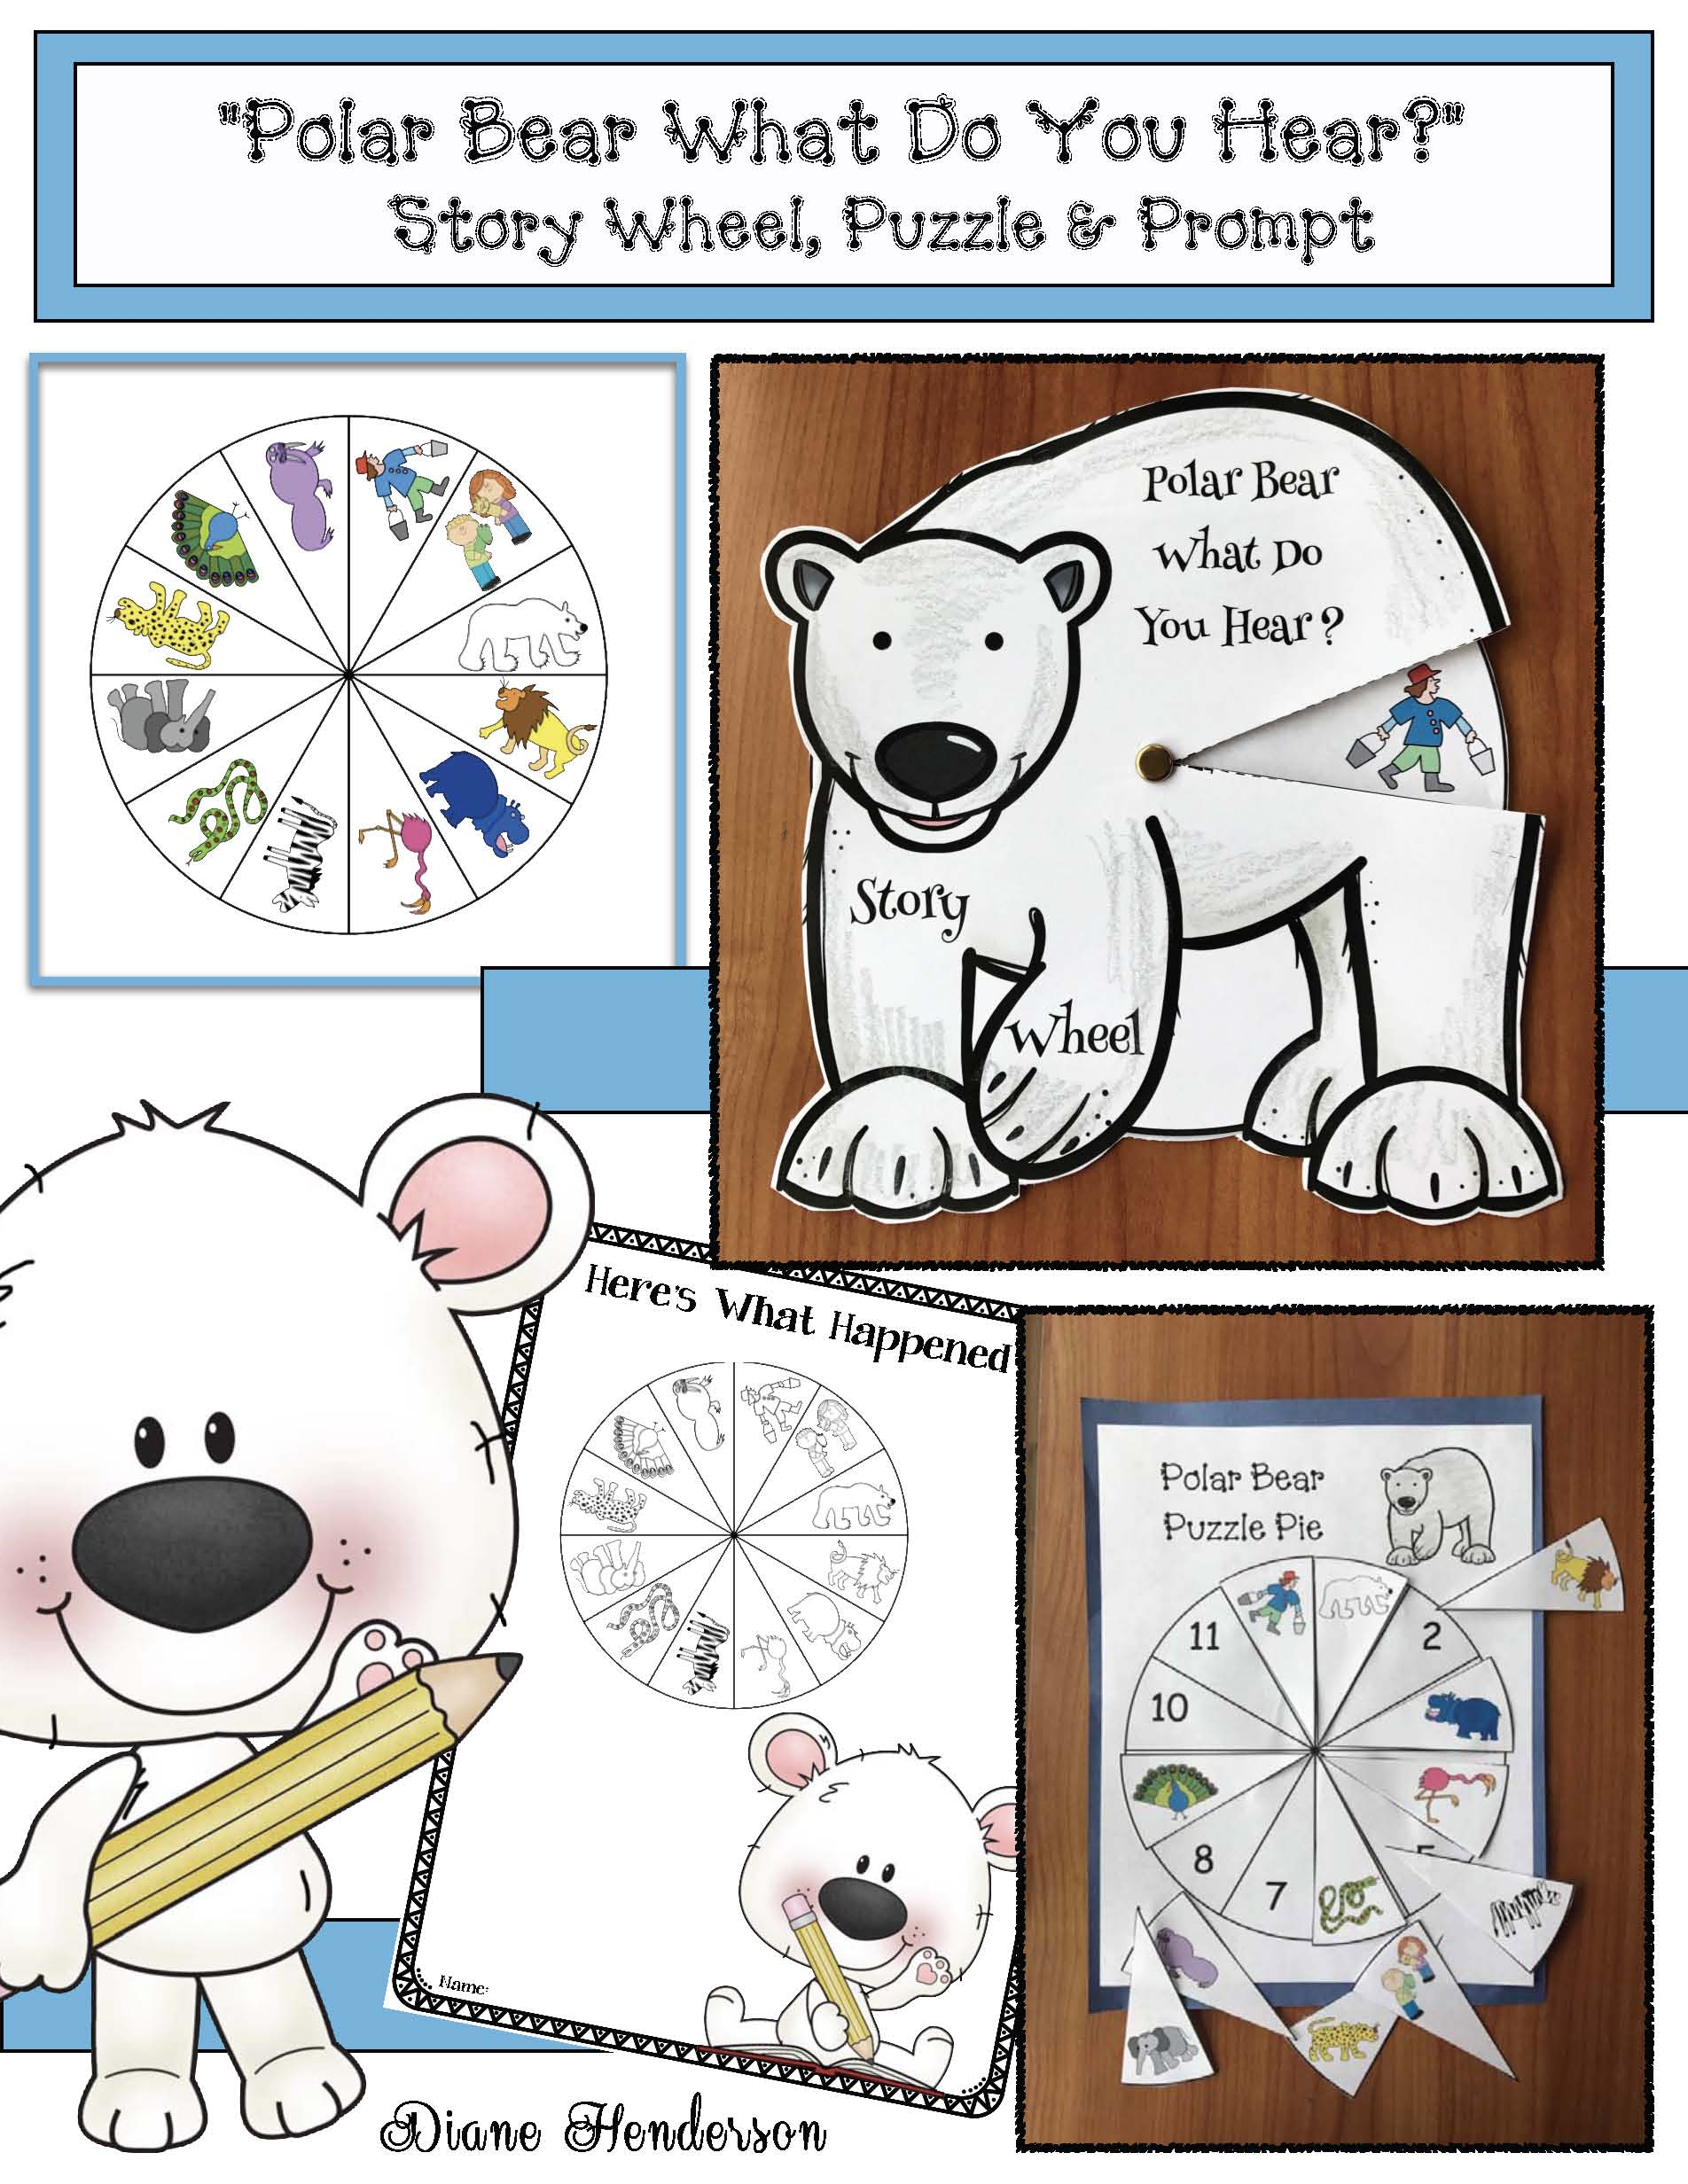 polar bear what do you hear activities, winter bulletin board ideas, winter center activities, literacy centers, 5 senses activities, eric carle books, bill martin books, polar bear crafts, retelling a story activities, sequencing a story activities, farm animal activities, story wheels, emergent reader books, class made books